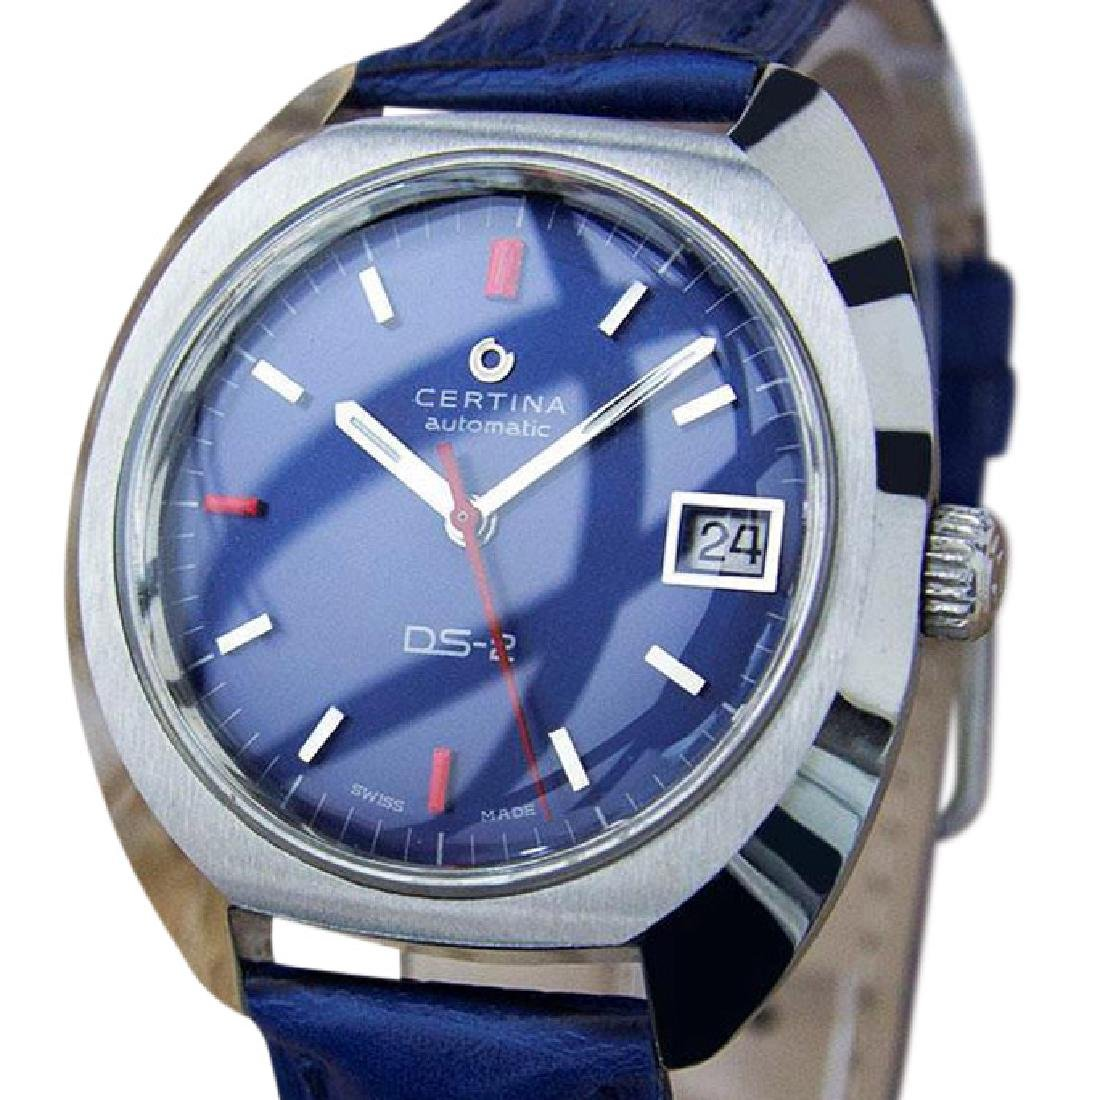 CERTINA | DS2 Swiss Automatic cal 25-651 | 1970s